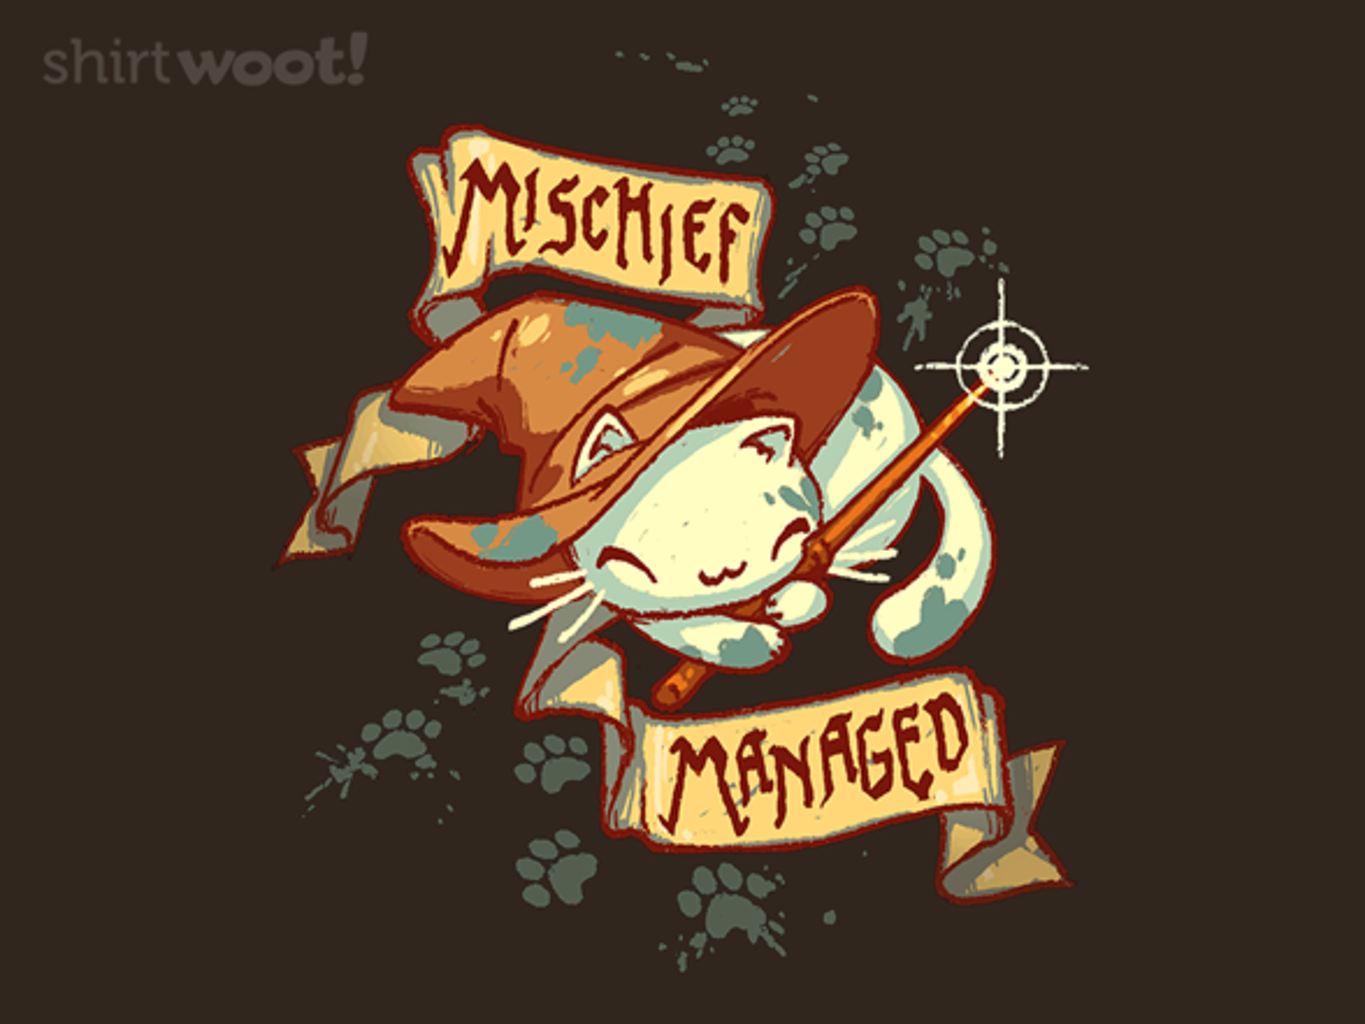 Woot!: Mischief Managed